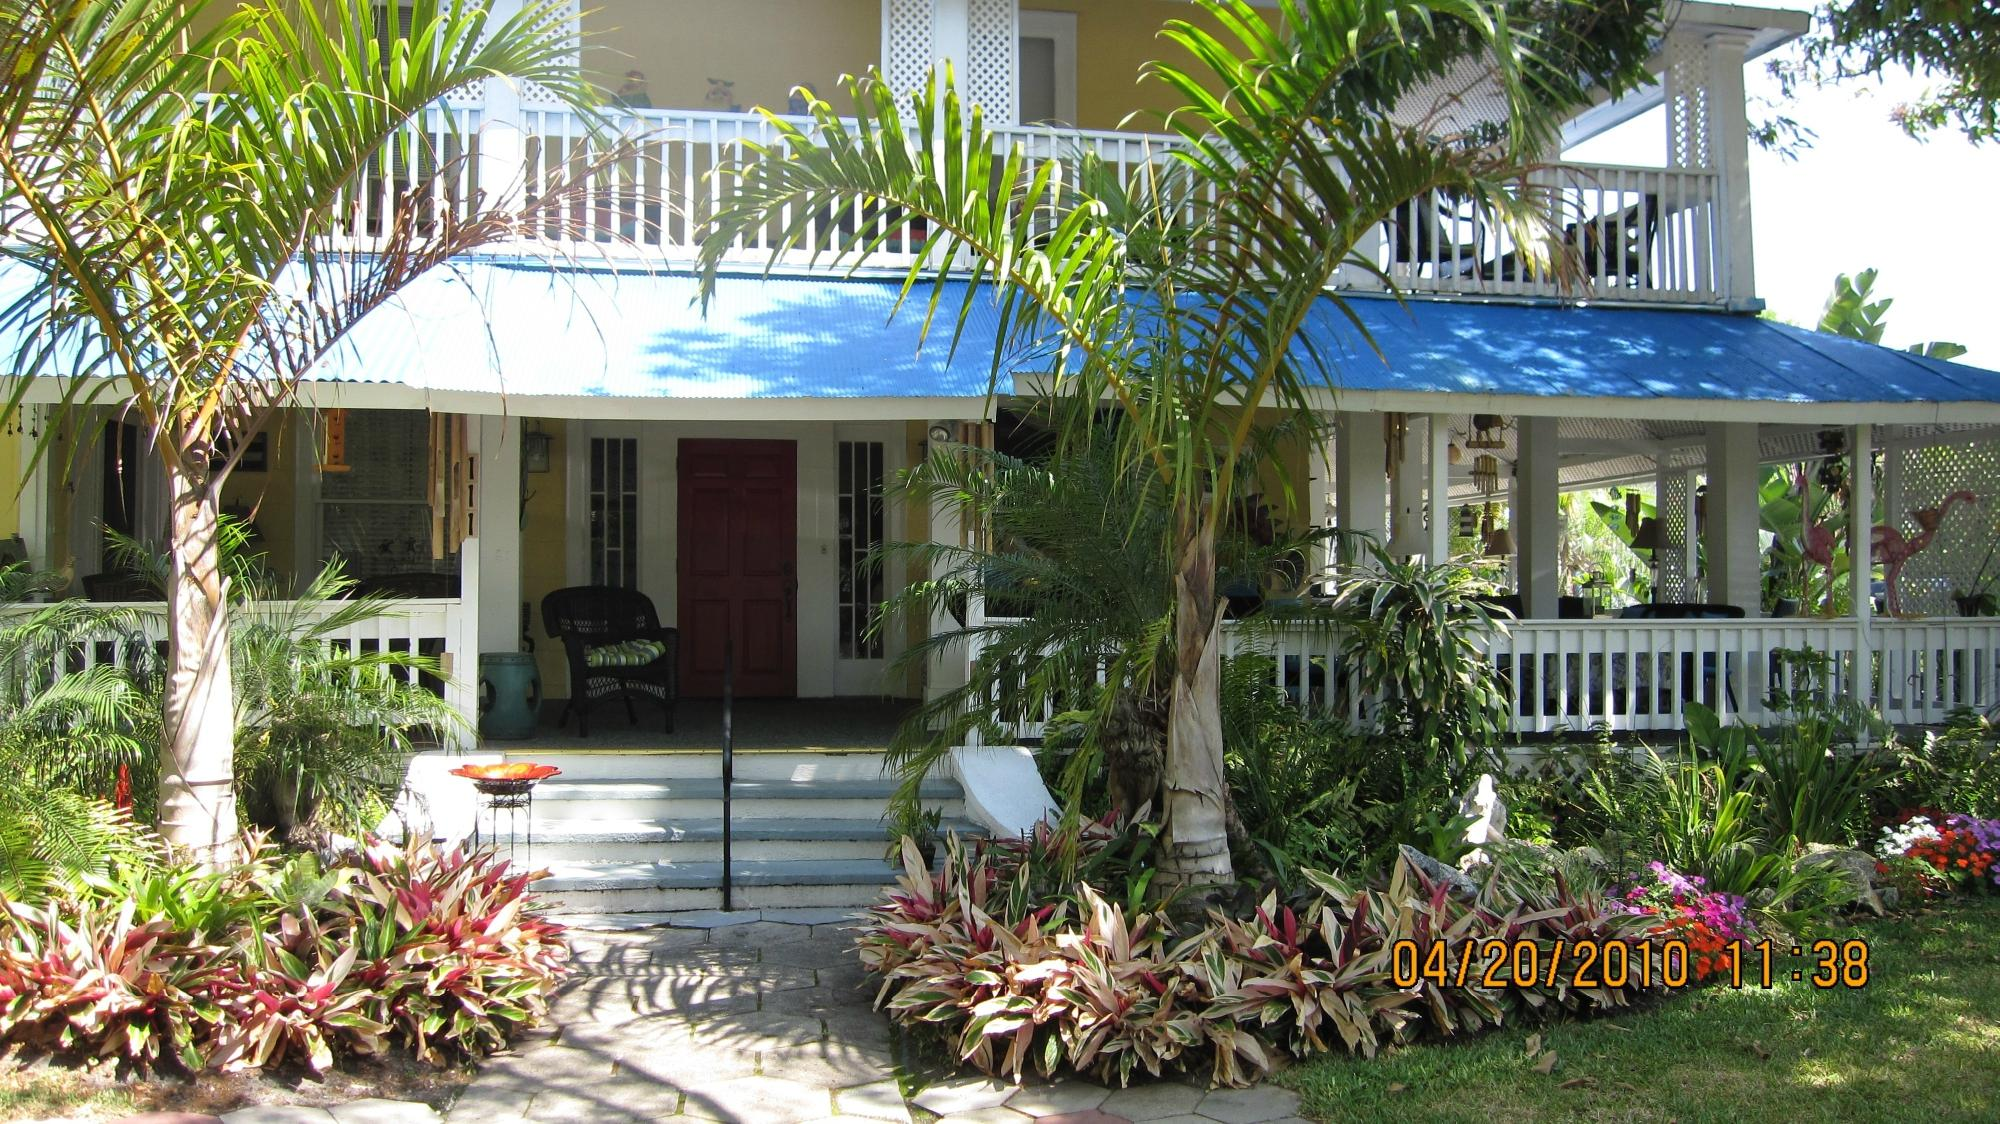 La Veranda Bed & Breakfast